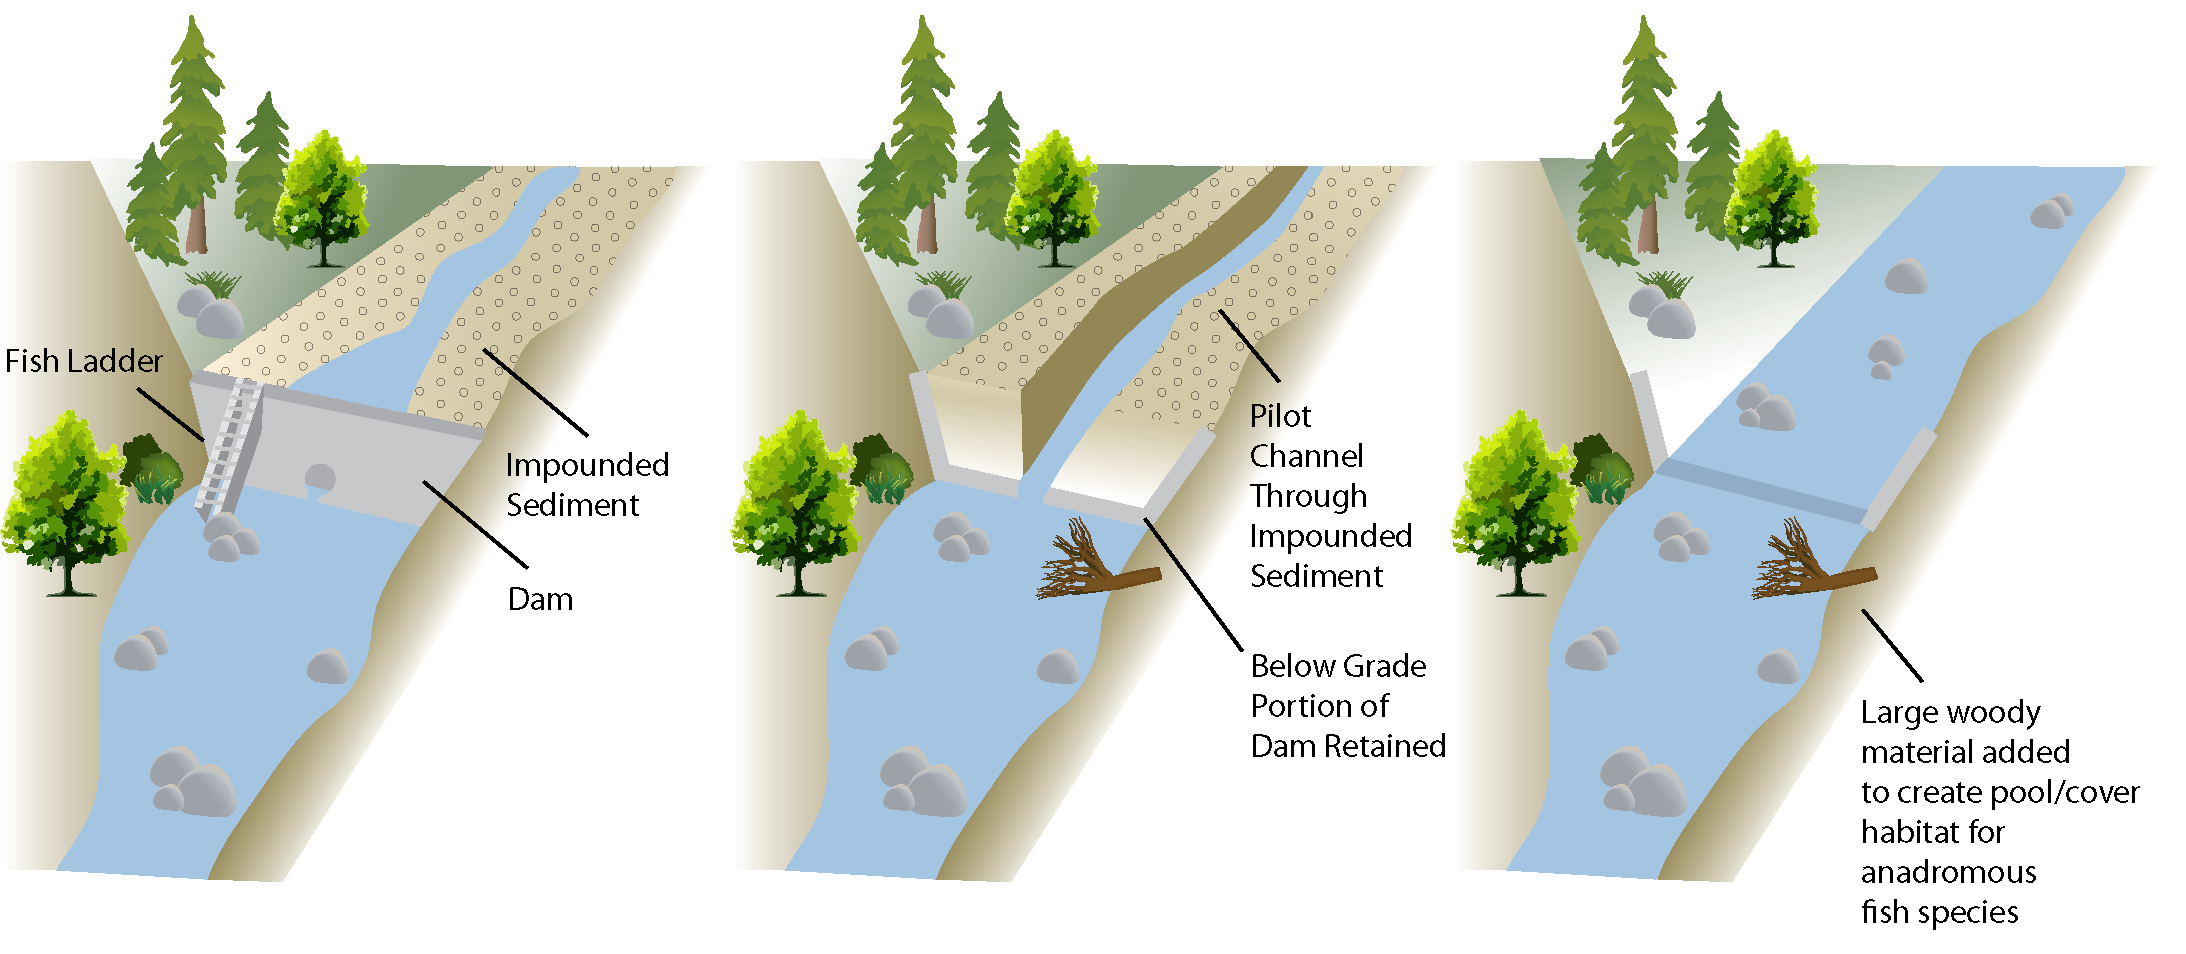 Schematic of the current condition, immediately post-construction and future condition of the once dammed reach